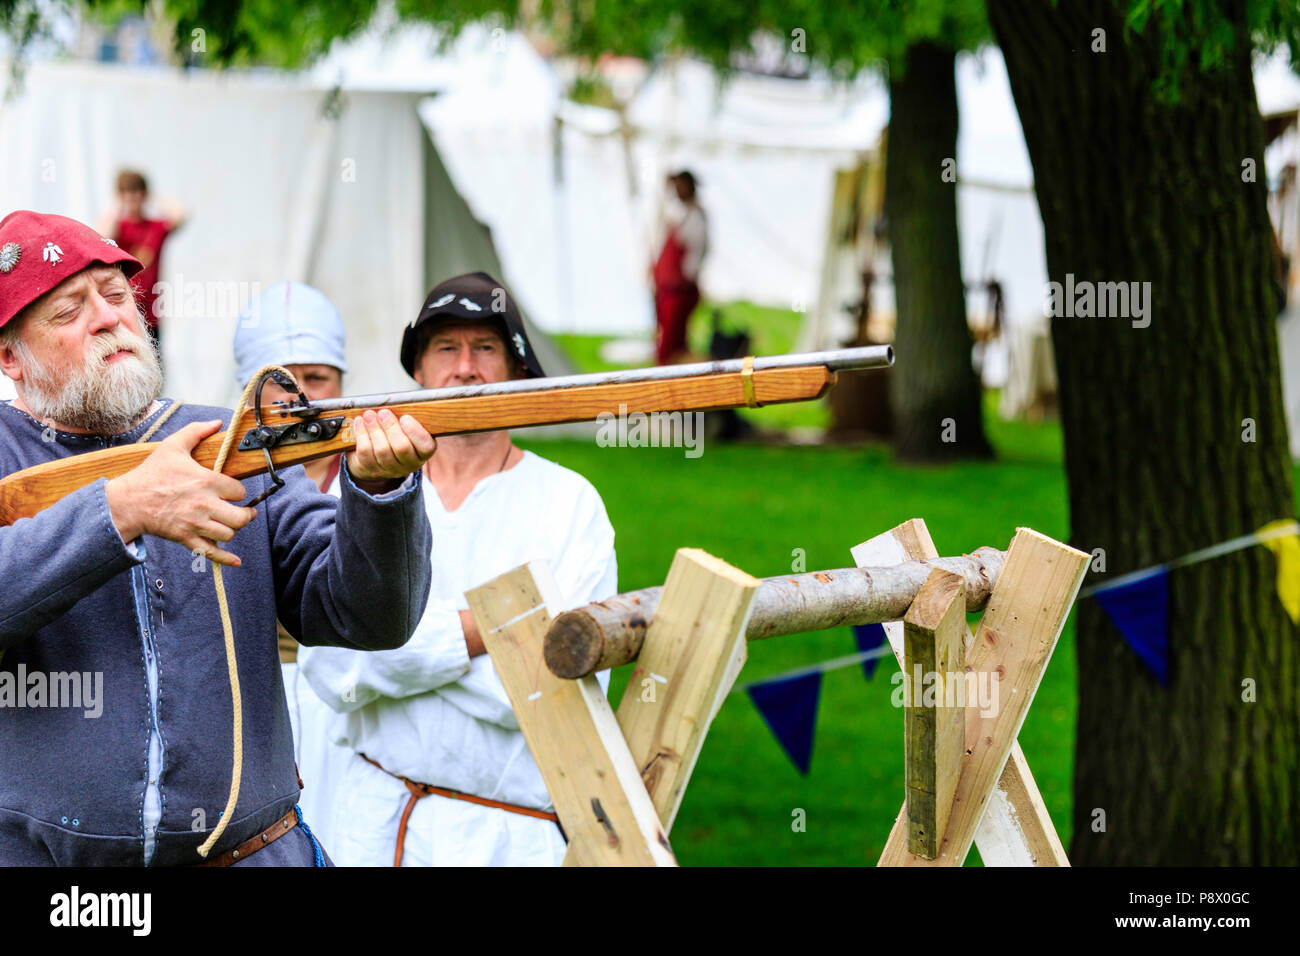 Man in medieval costume, about to fire harquebus, arquebus, early reconstructed gun, circa 16th century at living history reenactment event - Stock Image